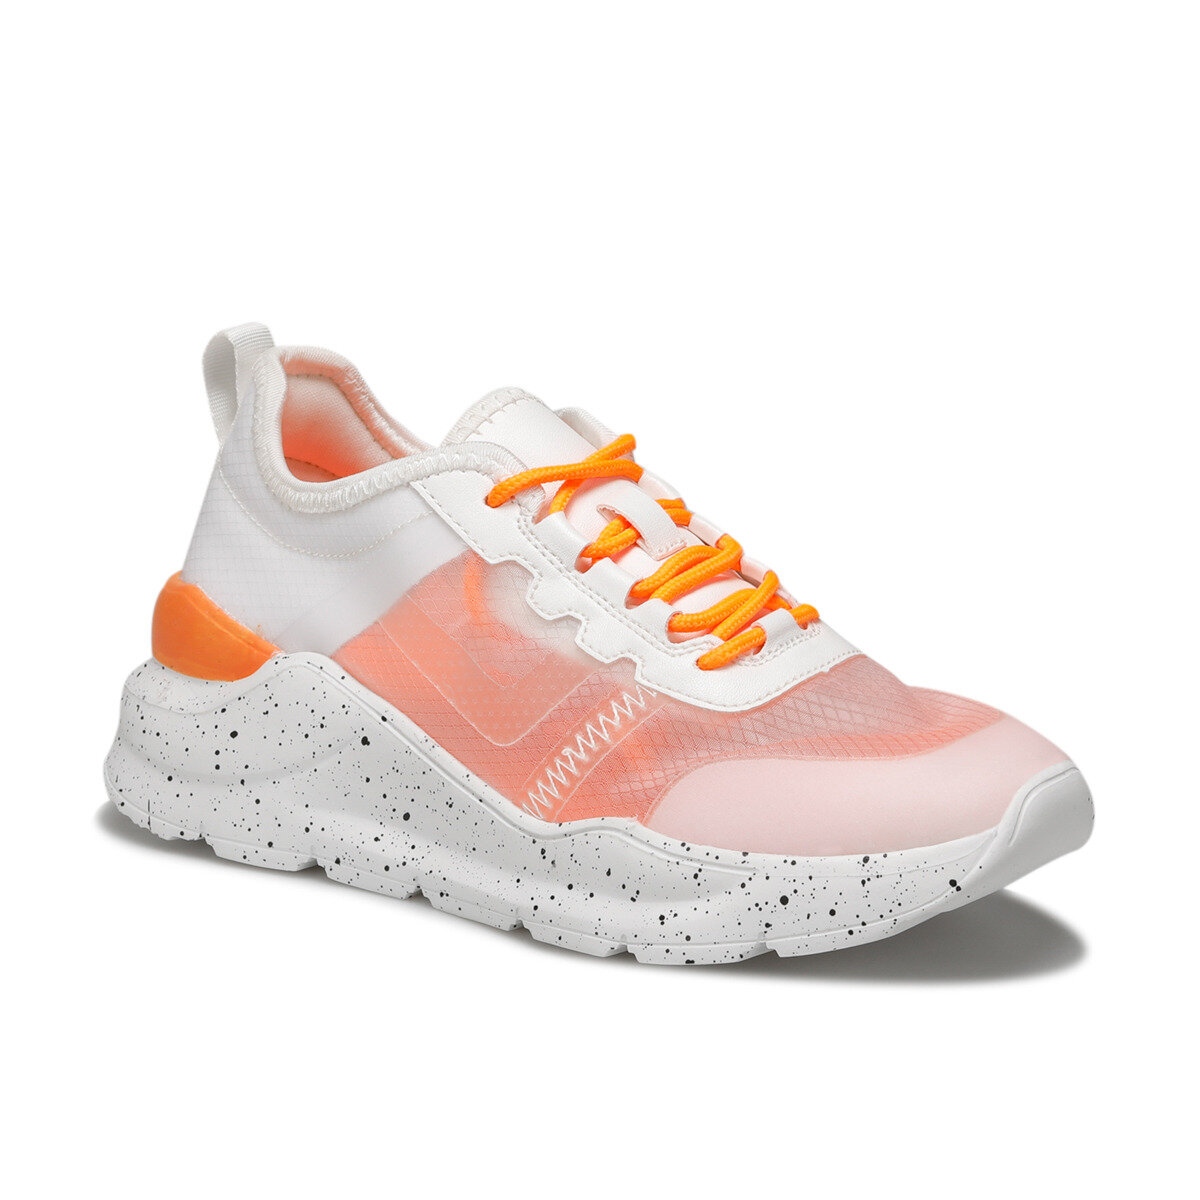 FLO Orange White Women Sneaker Fashion Shoes Transparent Casual Shoes LUMBERJACK